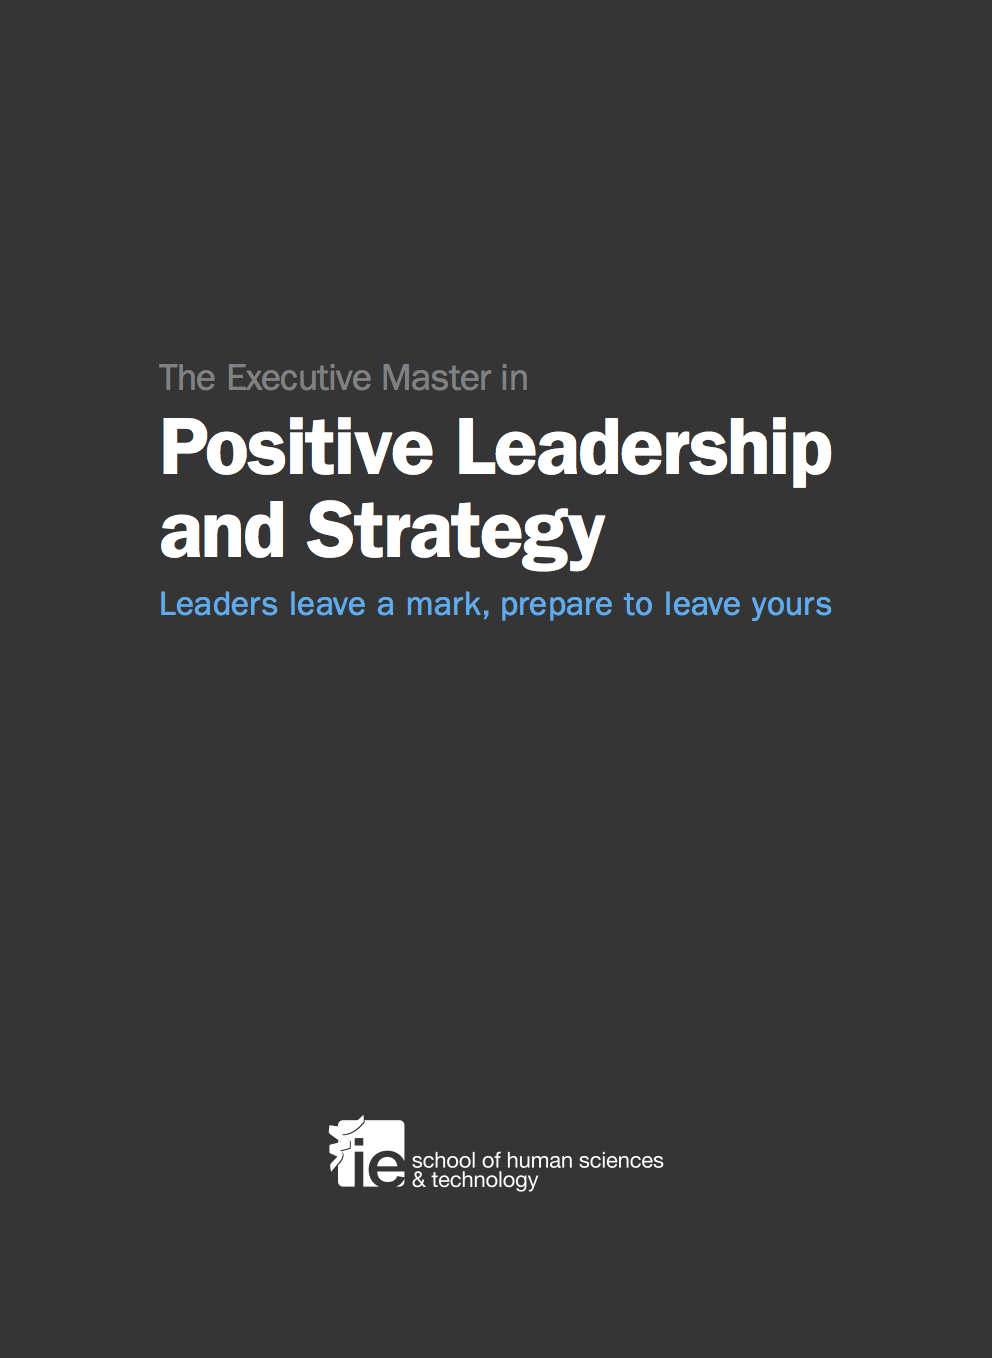 Positive Leadership & Strategy